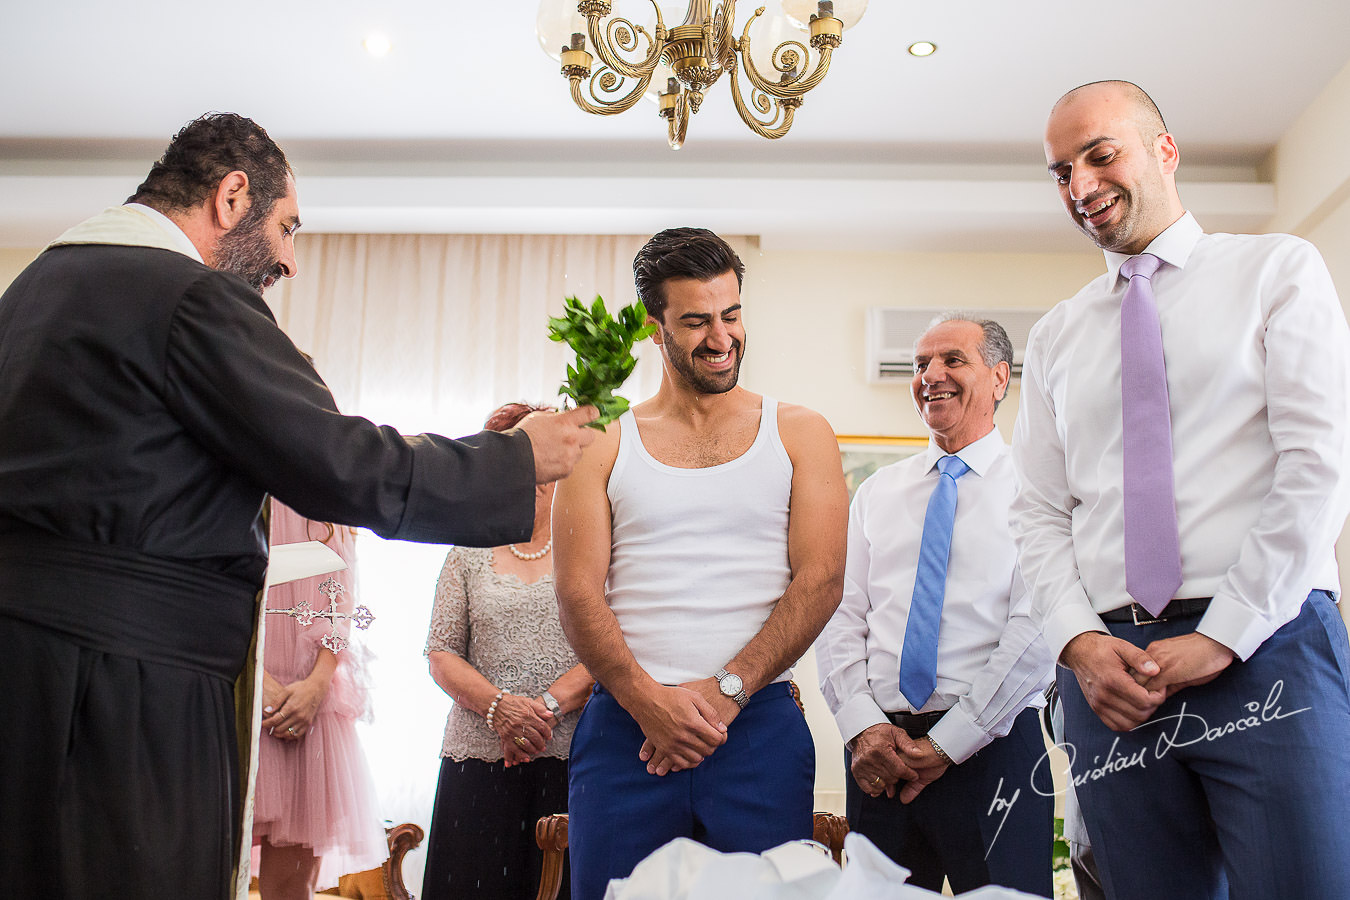 The priest and the groom during a traditional ceremony, captured at a wedding in Cyprus by Photographer Cristian Dascalu.